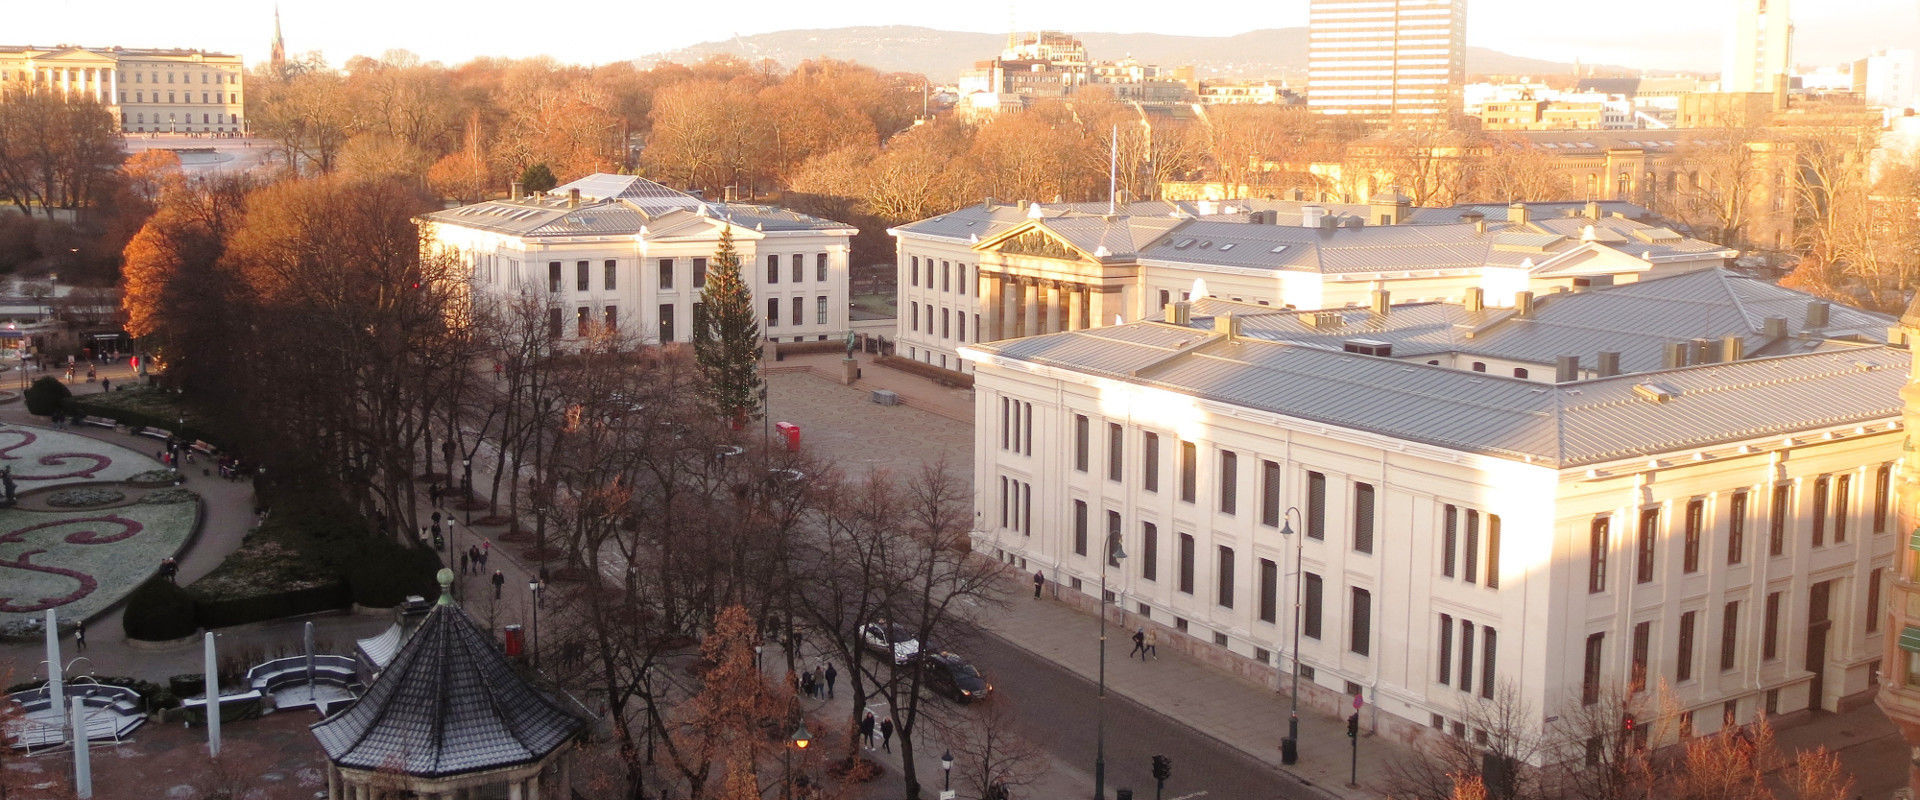 University of Oslo, Norway